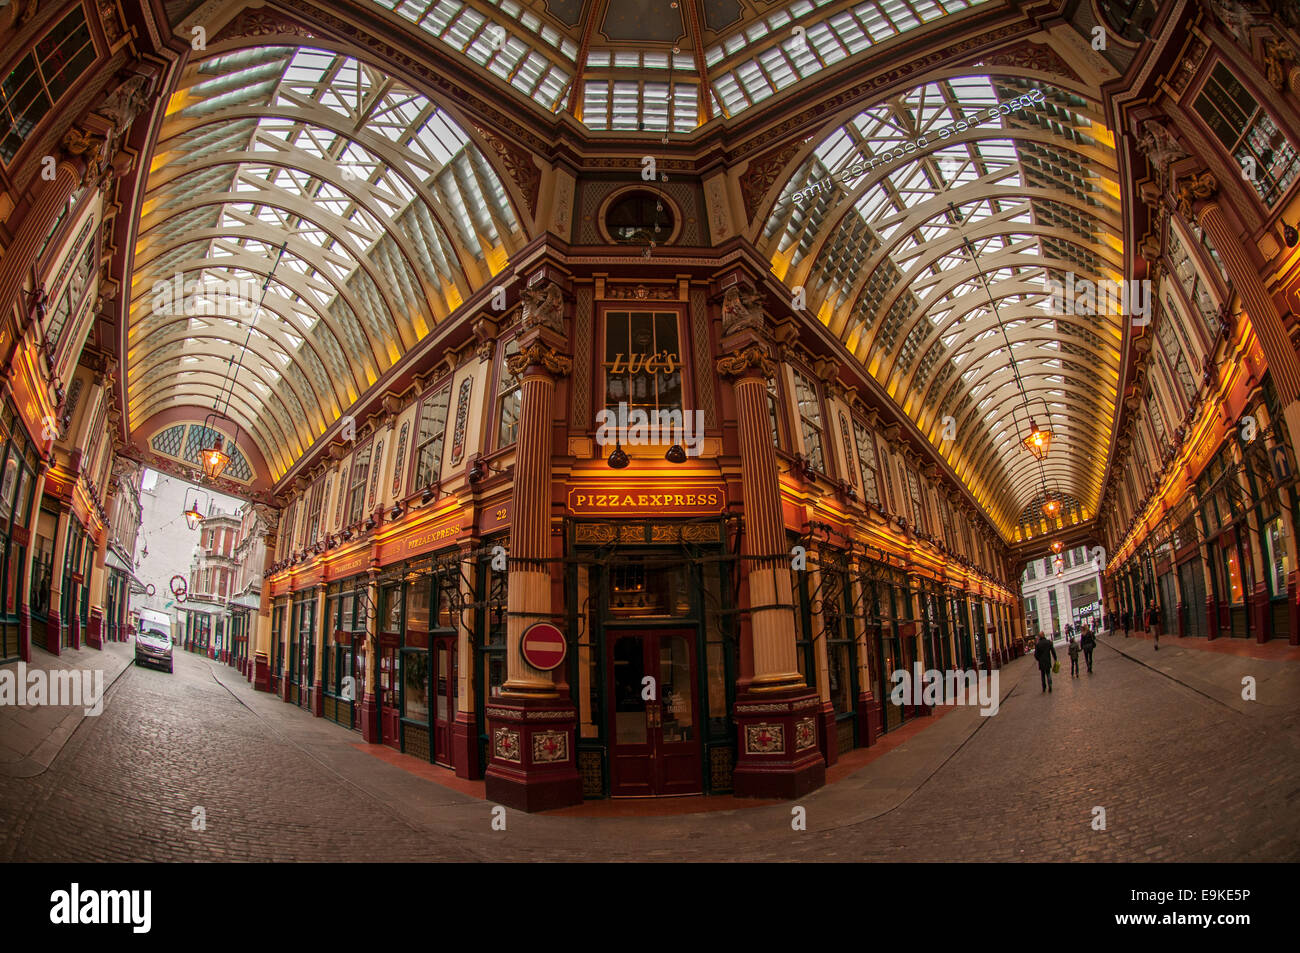 Pizza Express Leadenhall Market London - Stock Image